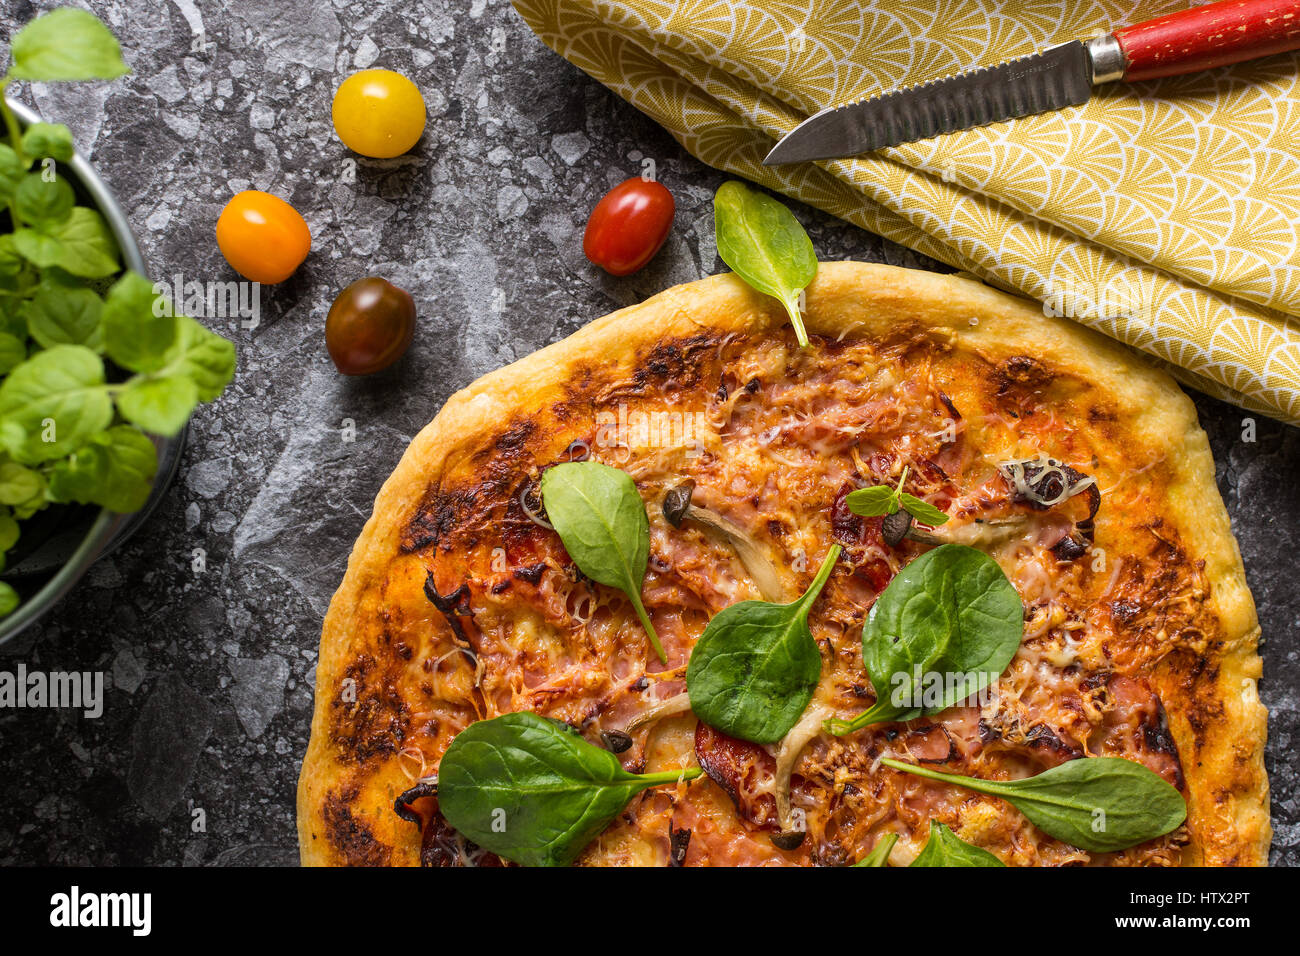 Homemade Pizza with Cheese, Ham, Salami, Baby Spinach and Shimeji Mushrooms. Fresh Baked Italian Food Ready to Eat. - Stock Image